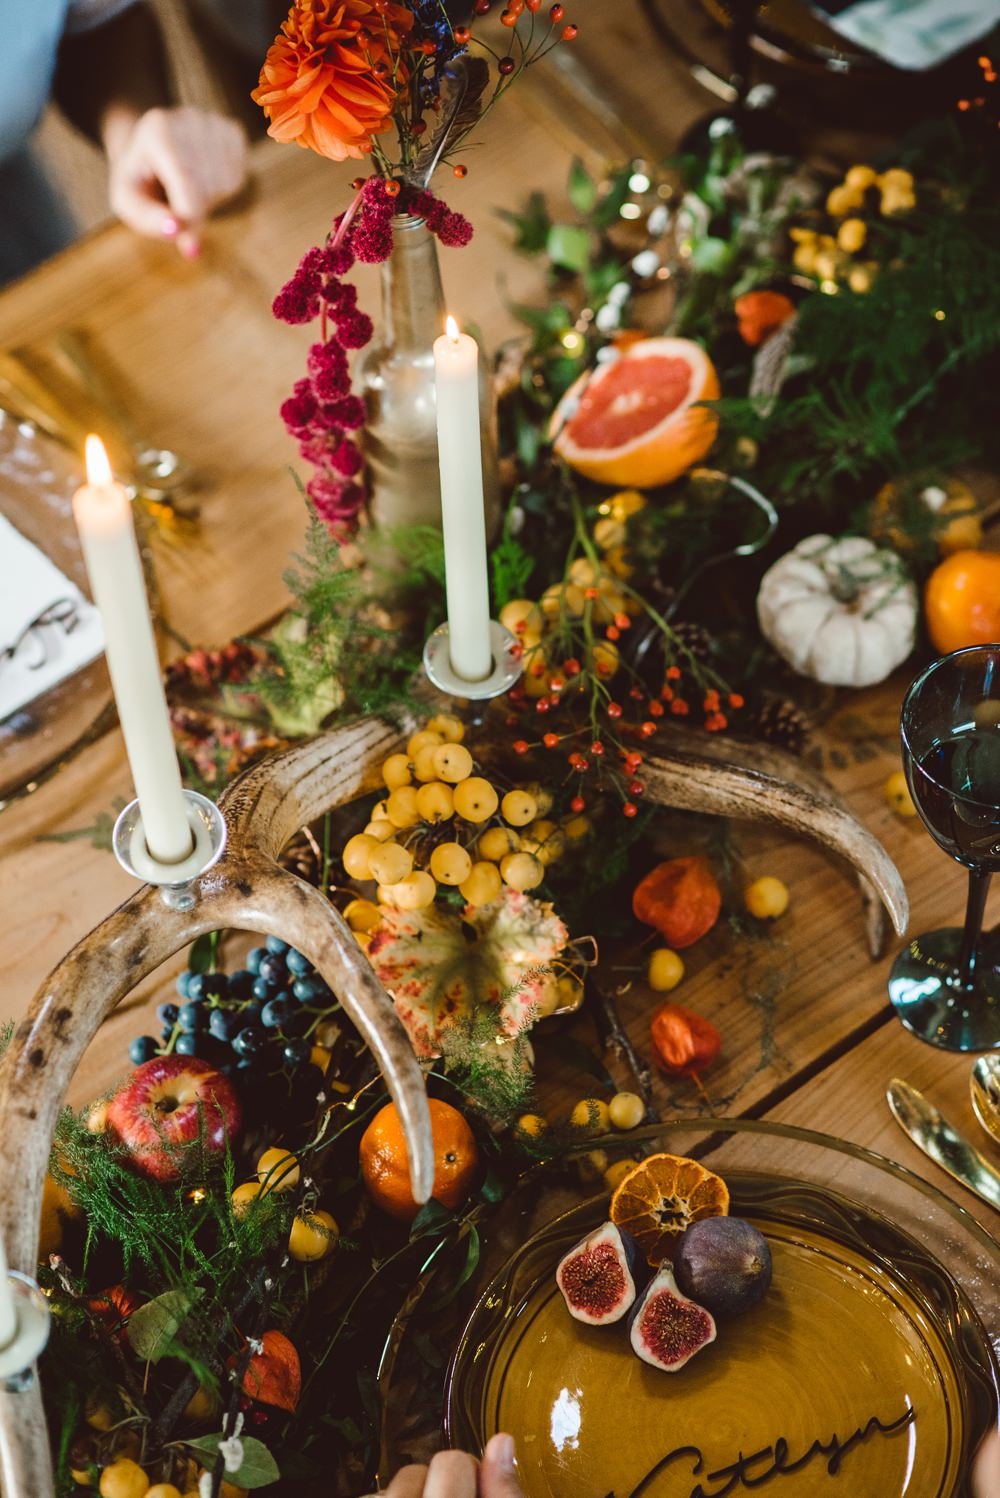 Tablescape Deor Flowers Bottles Fruit Candles Antlers Table Rustic Christmas Wedding Ideas Dhw Photography